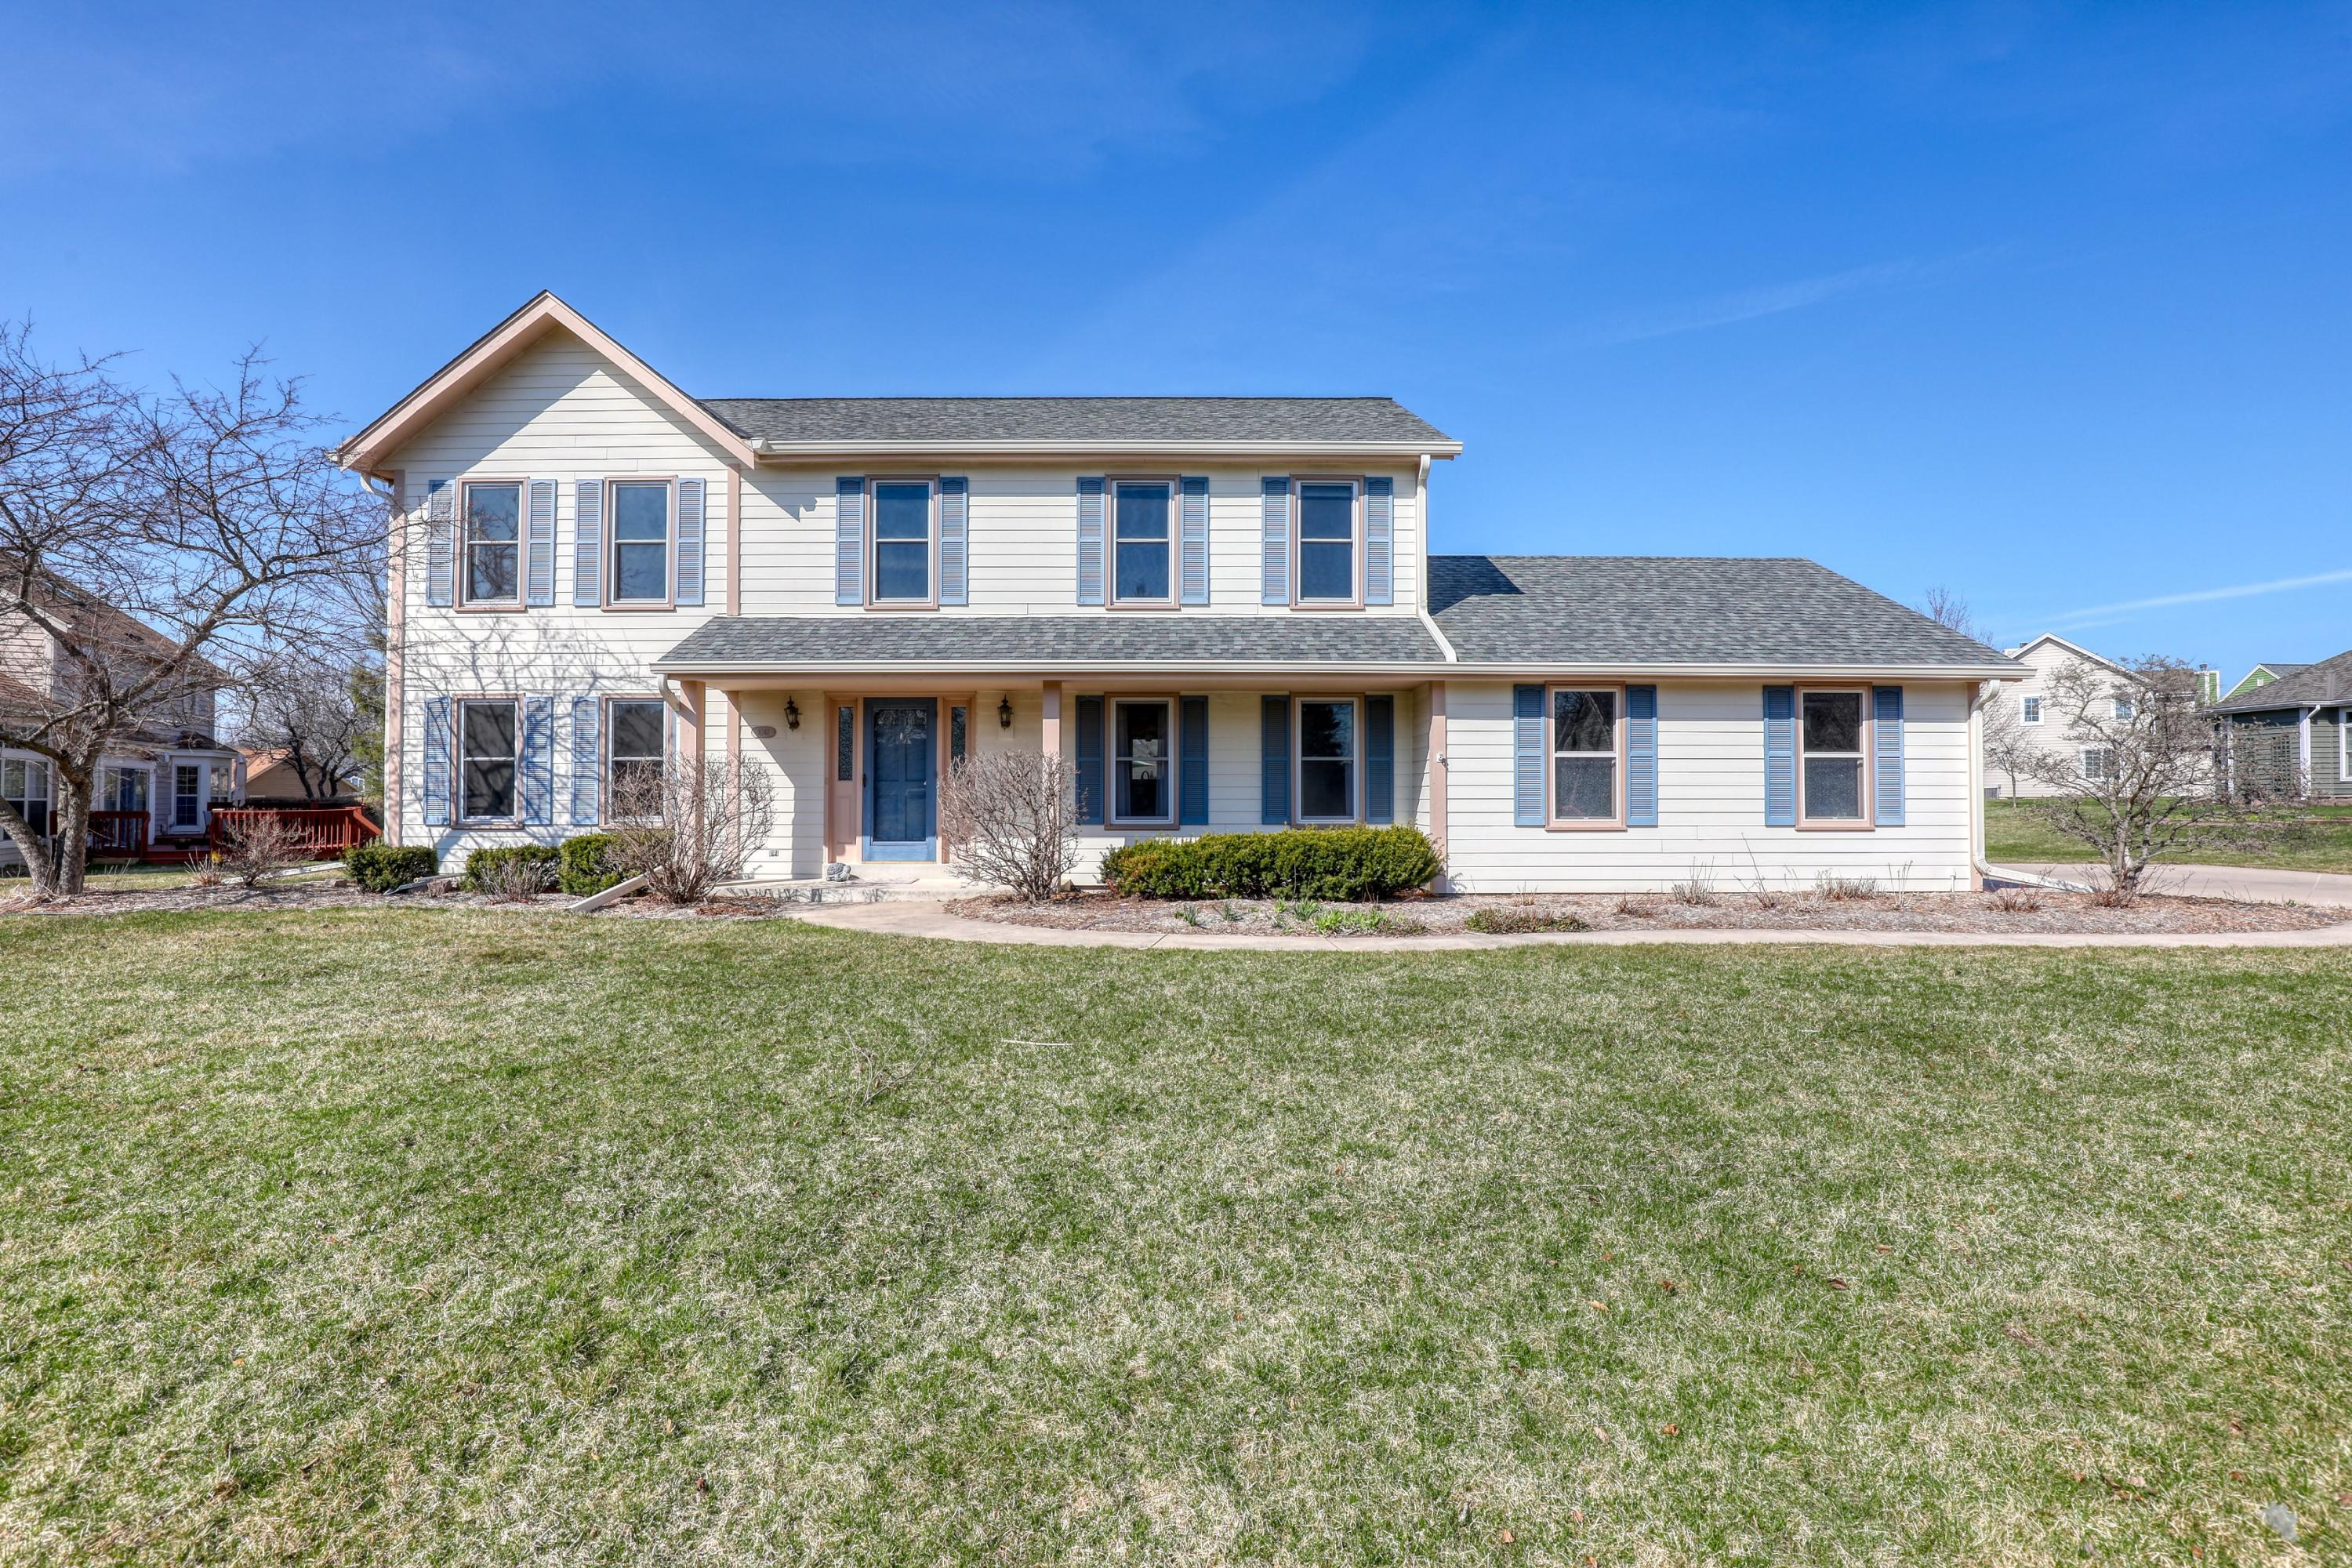 1047 Hillwood Blvd, Pewaukee, Wisconsin 53072, 4 Bedrooms Bedrooms, 7 Rooms Rooms,2 BathroomsBathrooms,Single-Family,For Sale,Hillwood Blvd,1734182